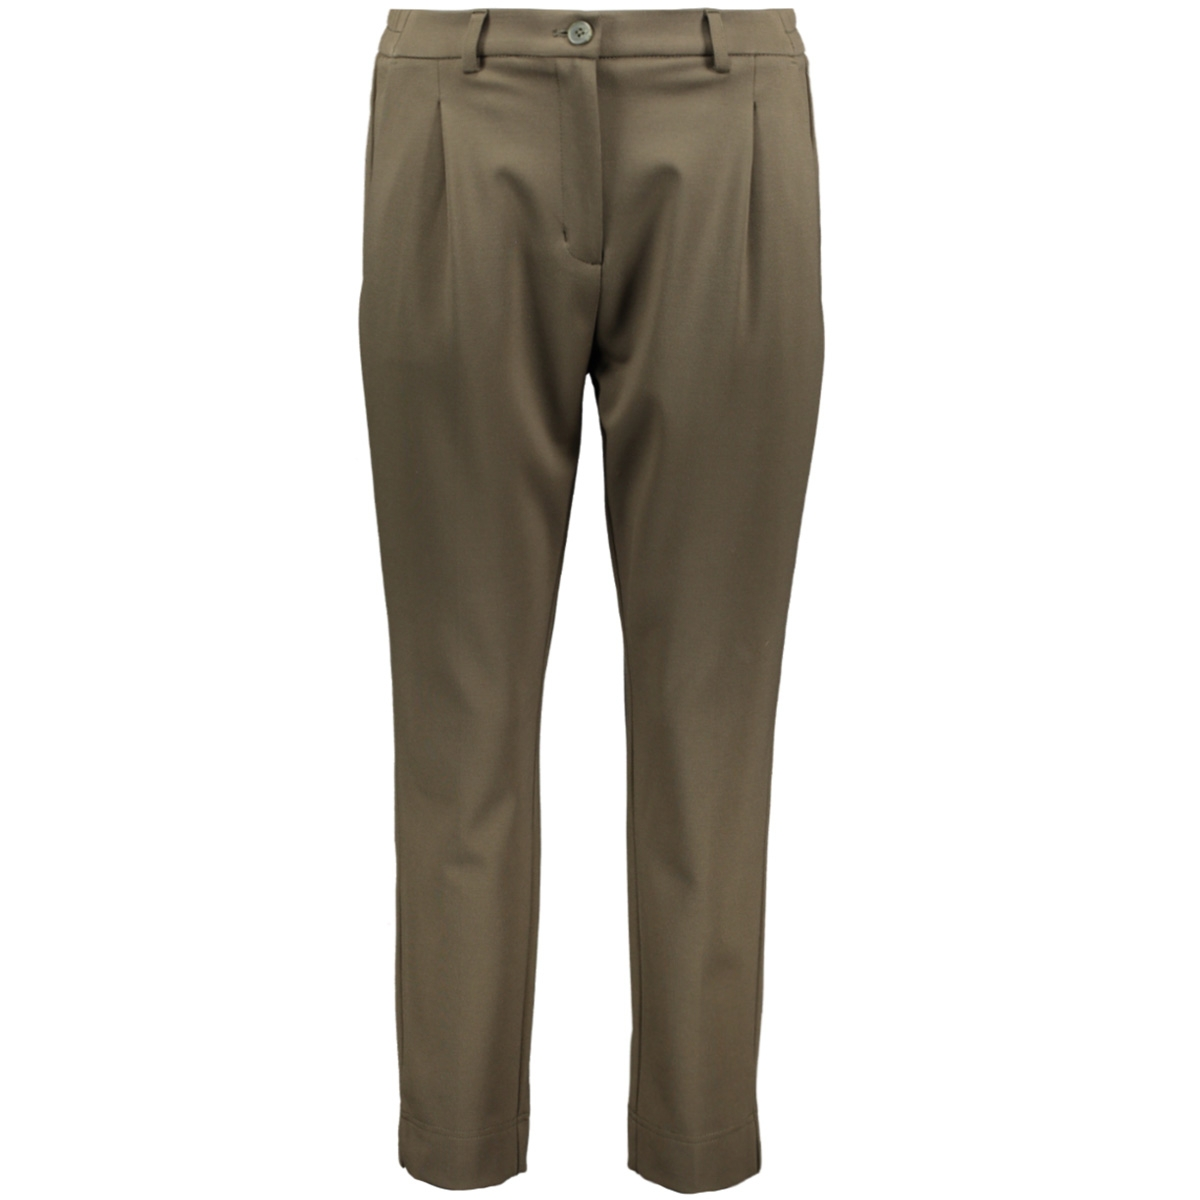 punti roma pants 0320 0362 smith & soul broek 708 forest